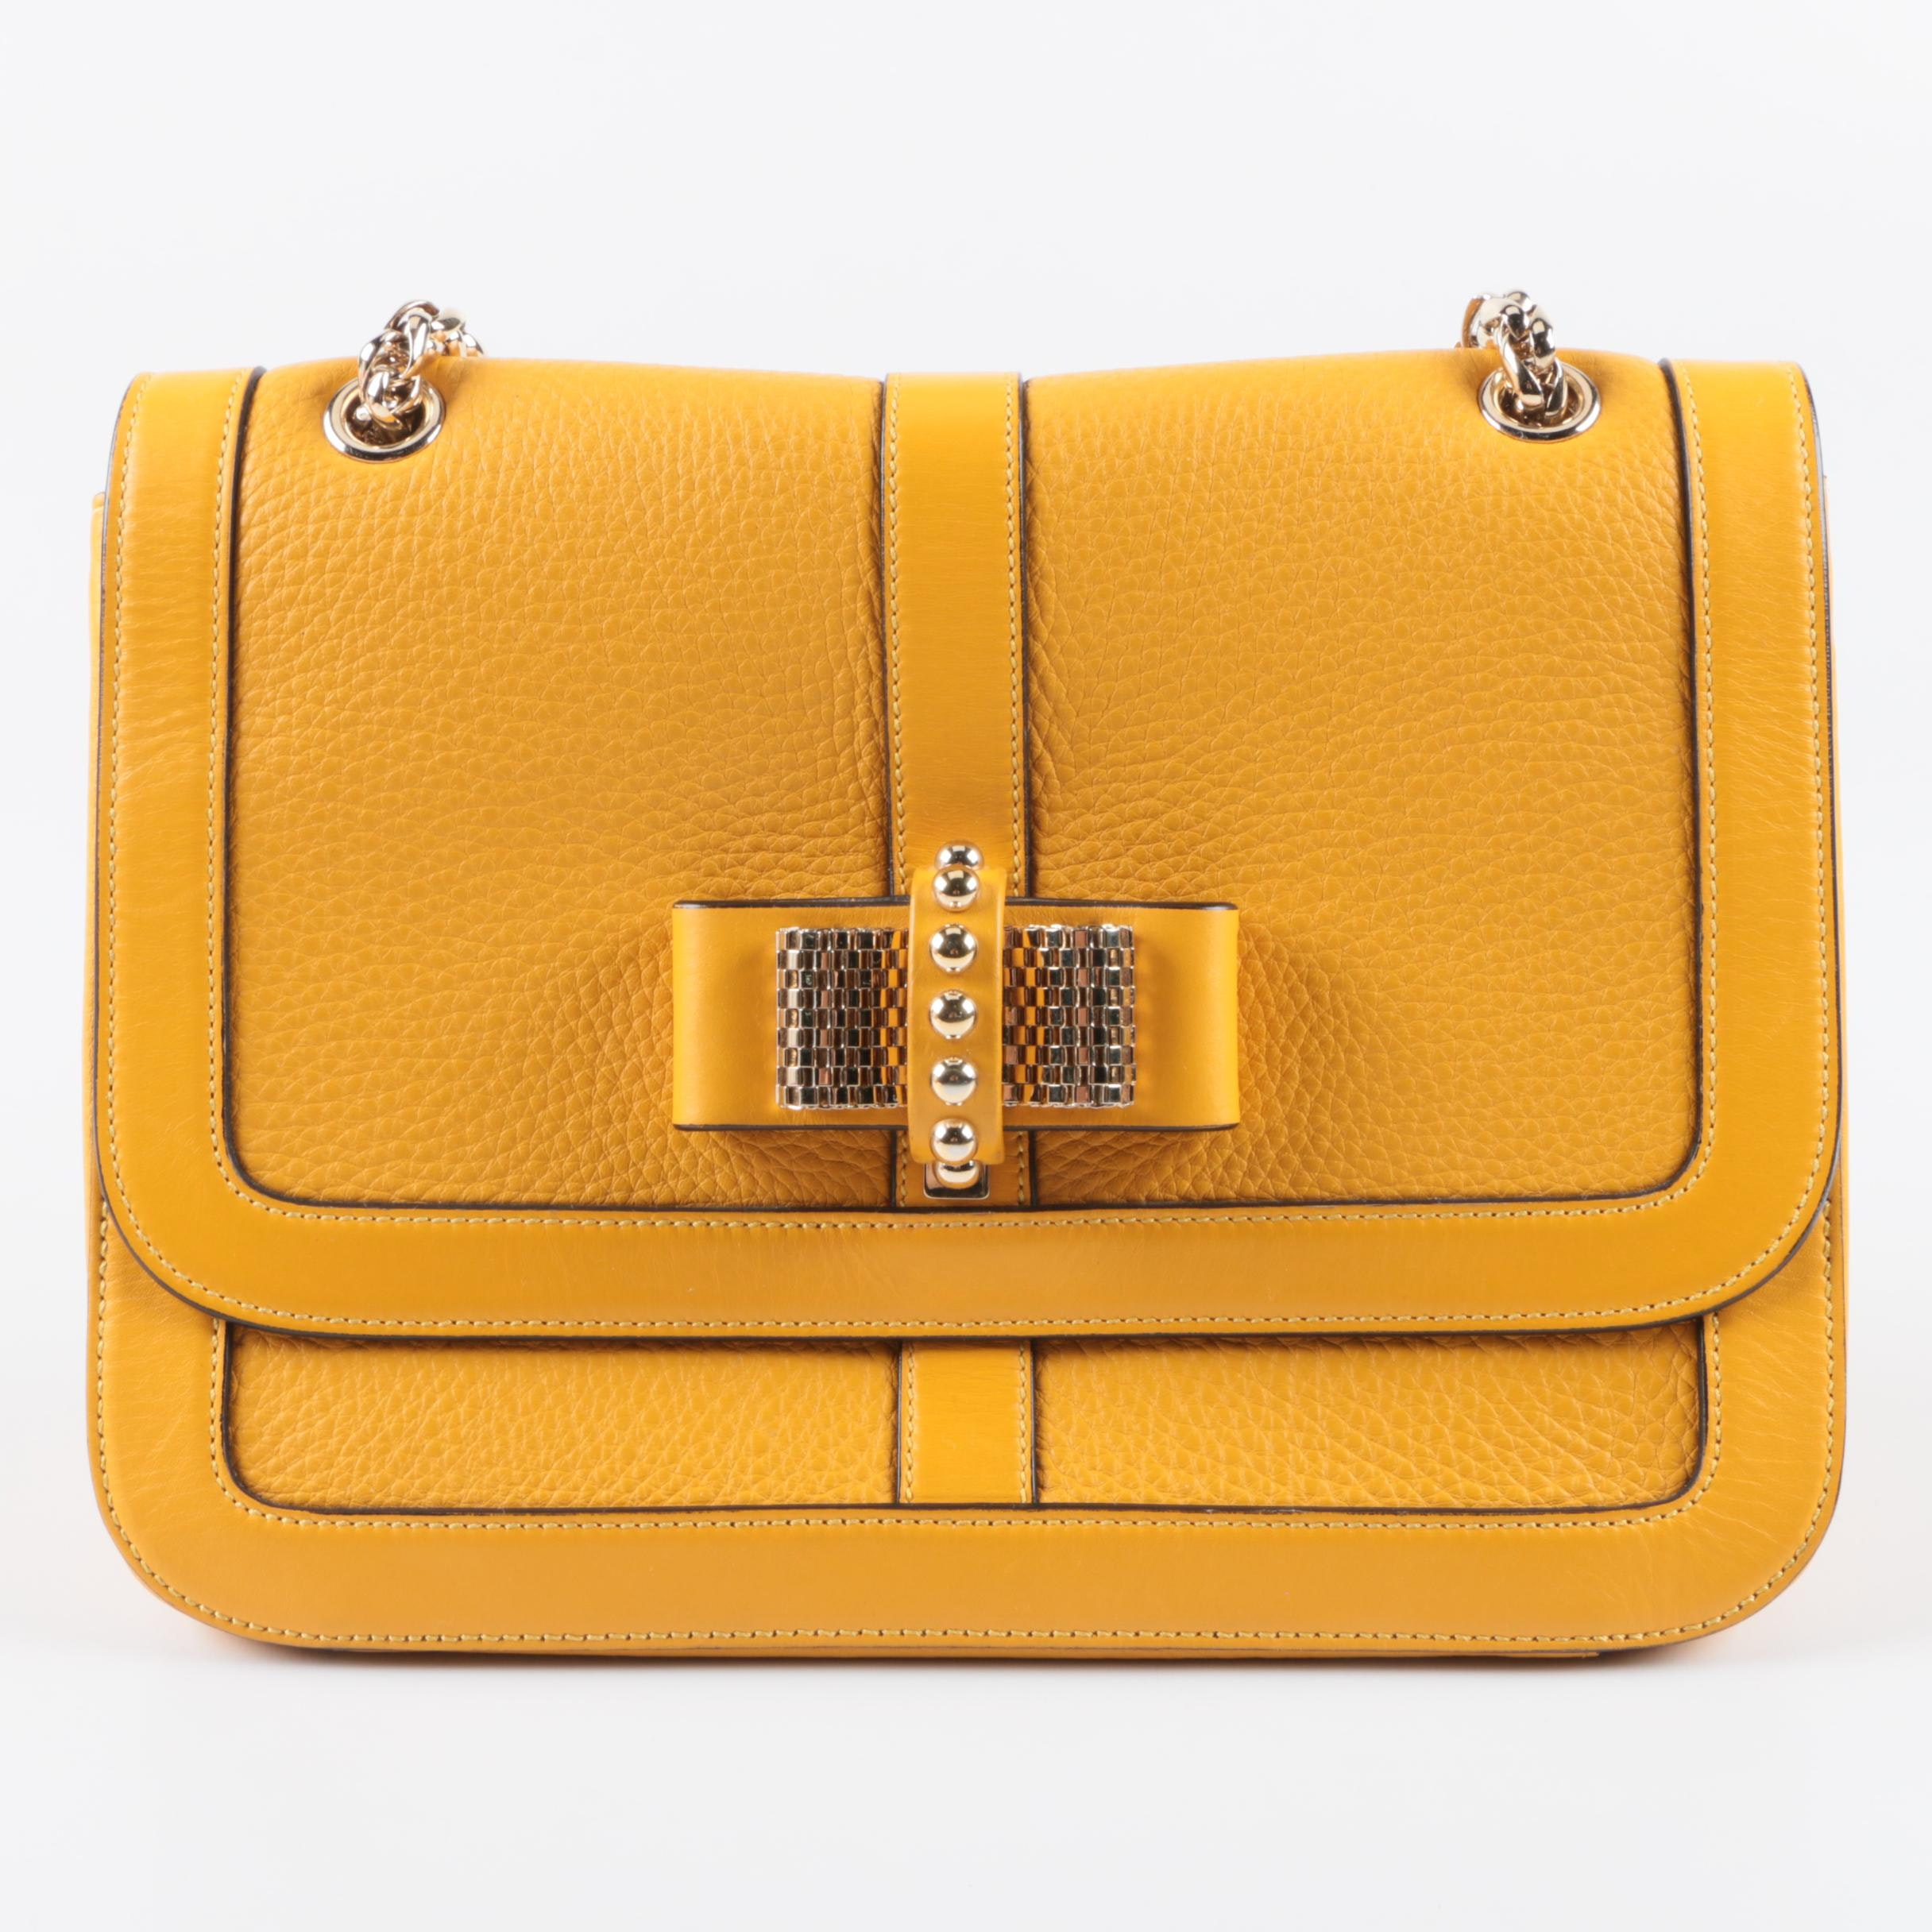 Christian Louboutin Yellow Leather Handbag